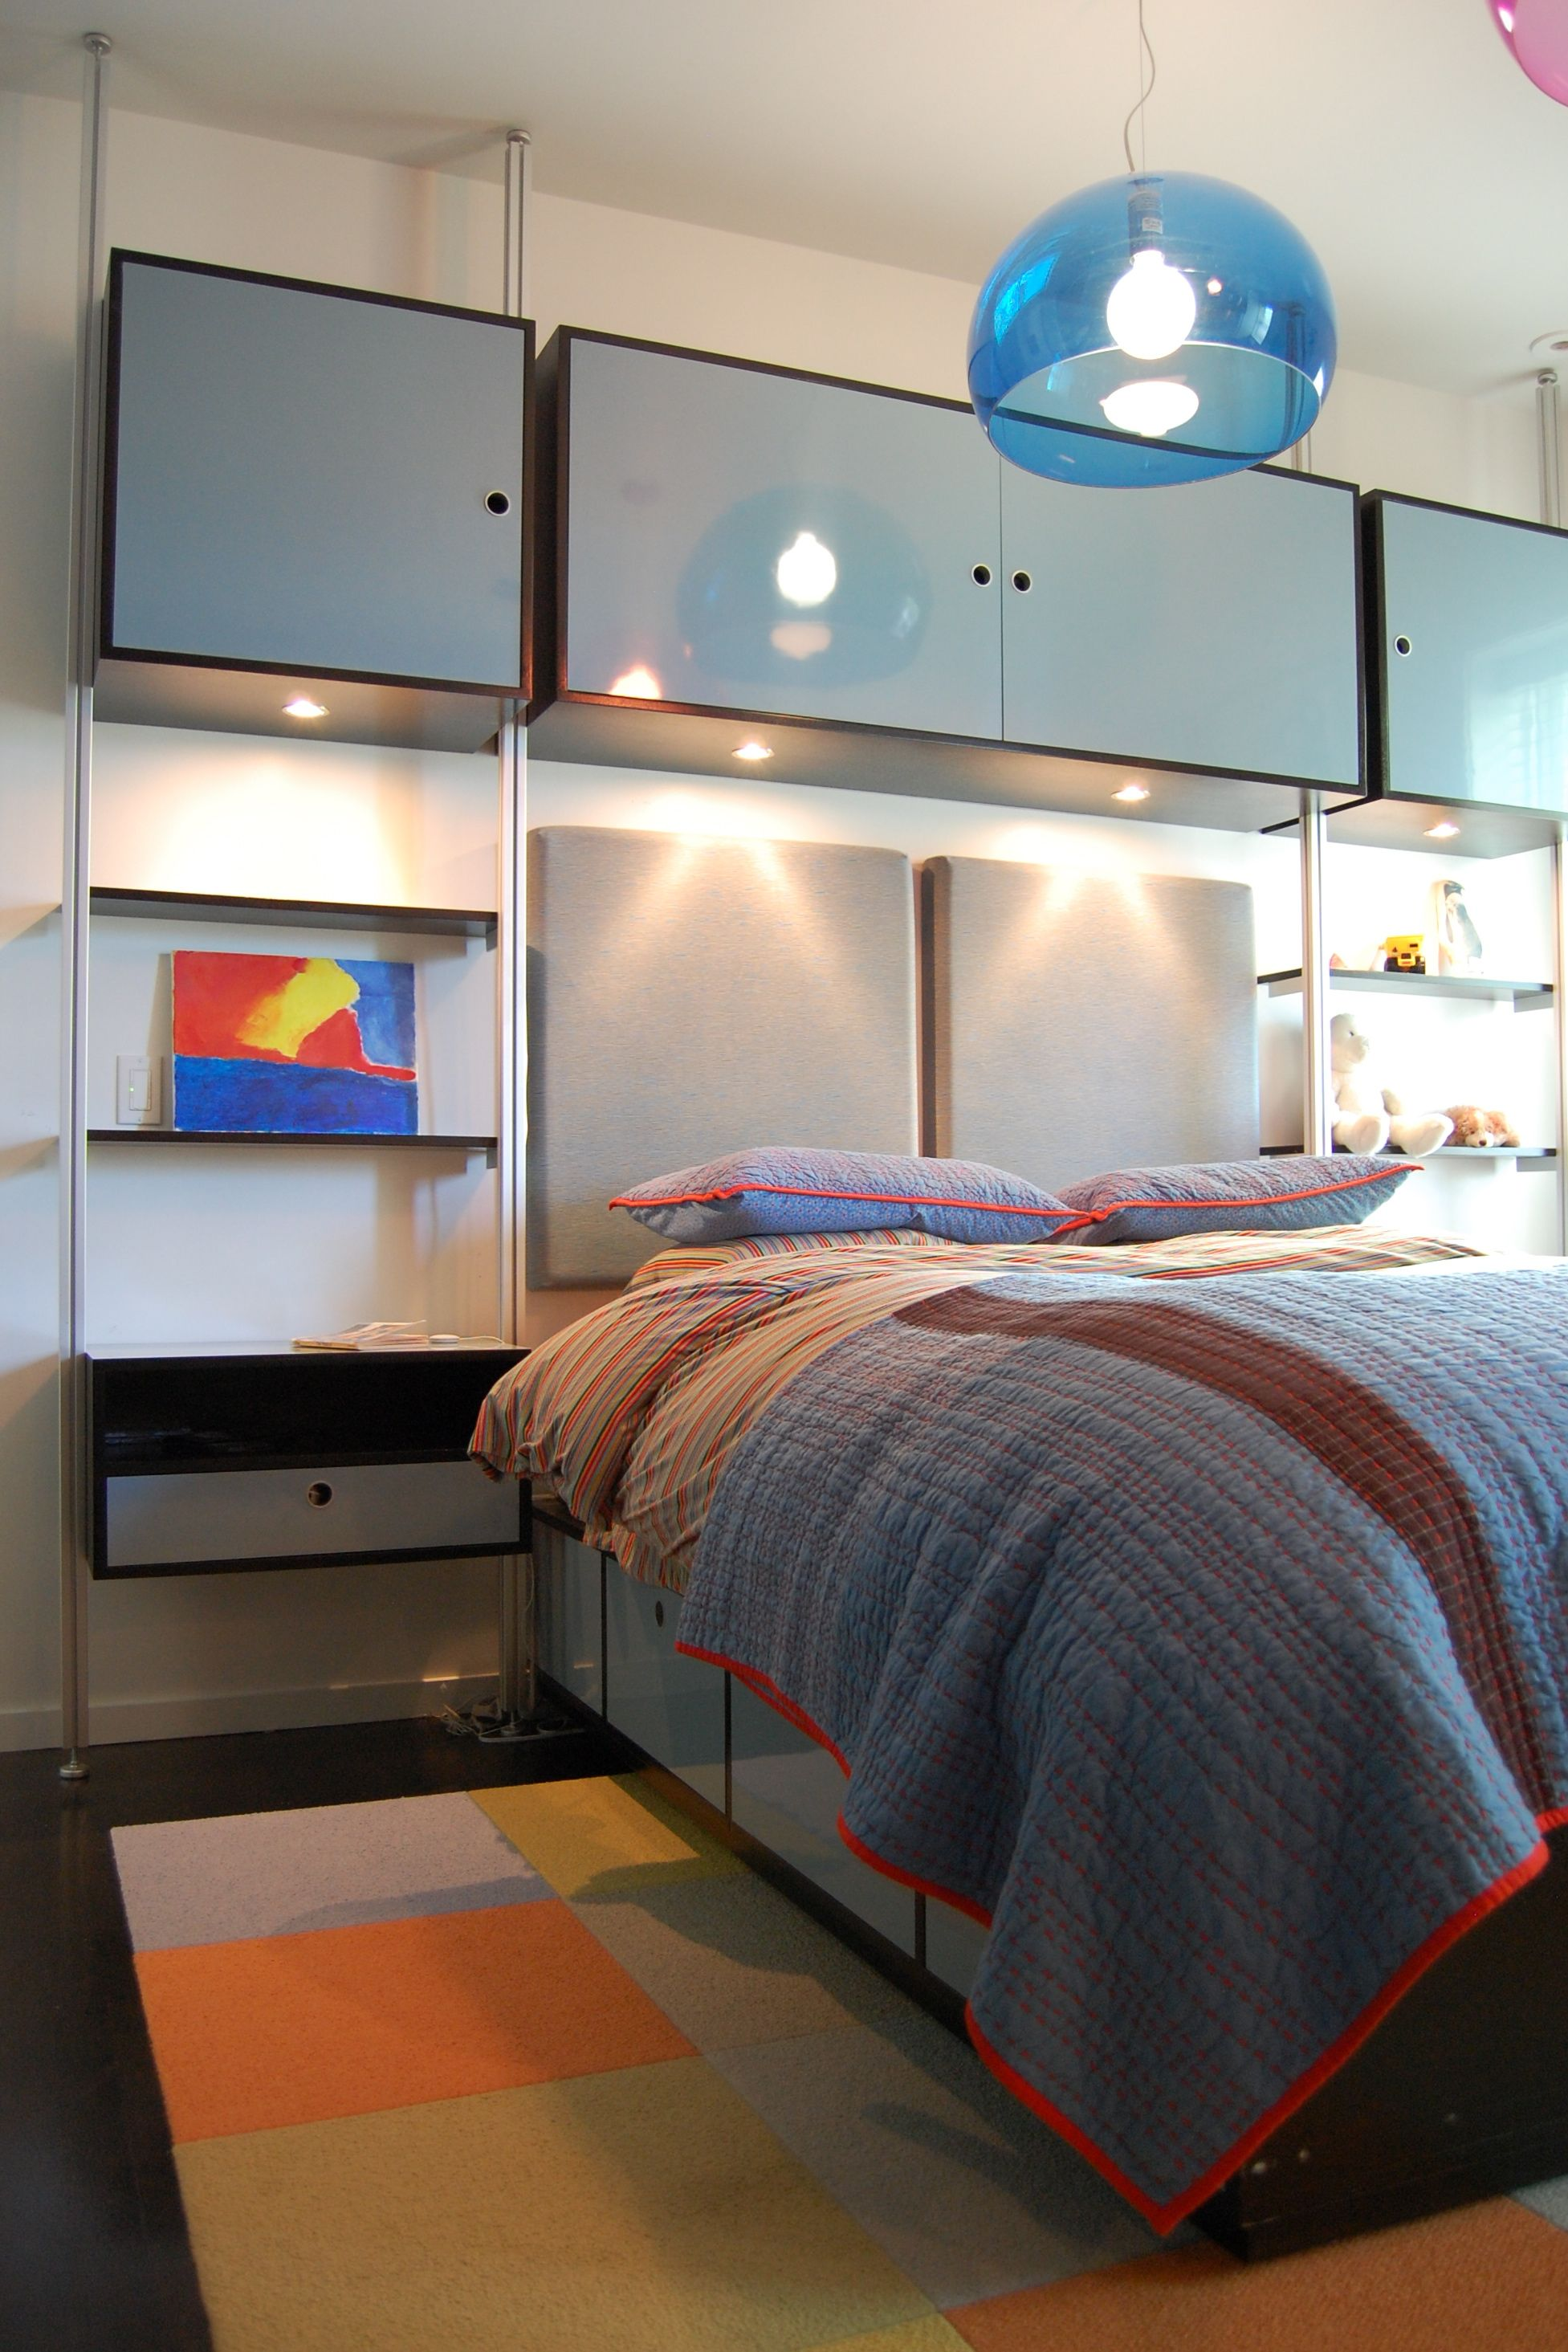 11 Year Old Boys Custom Bedroom Design Including Modular